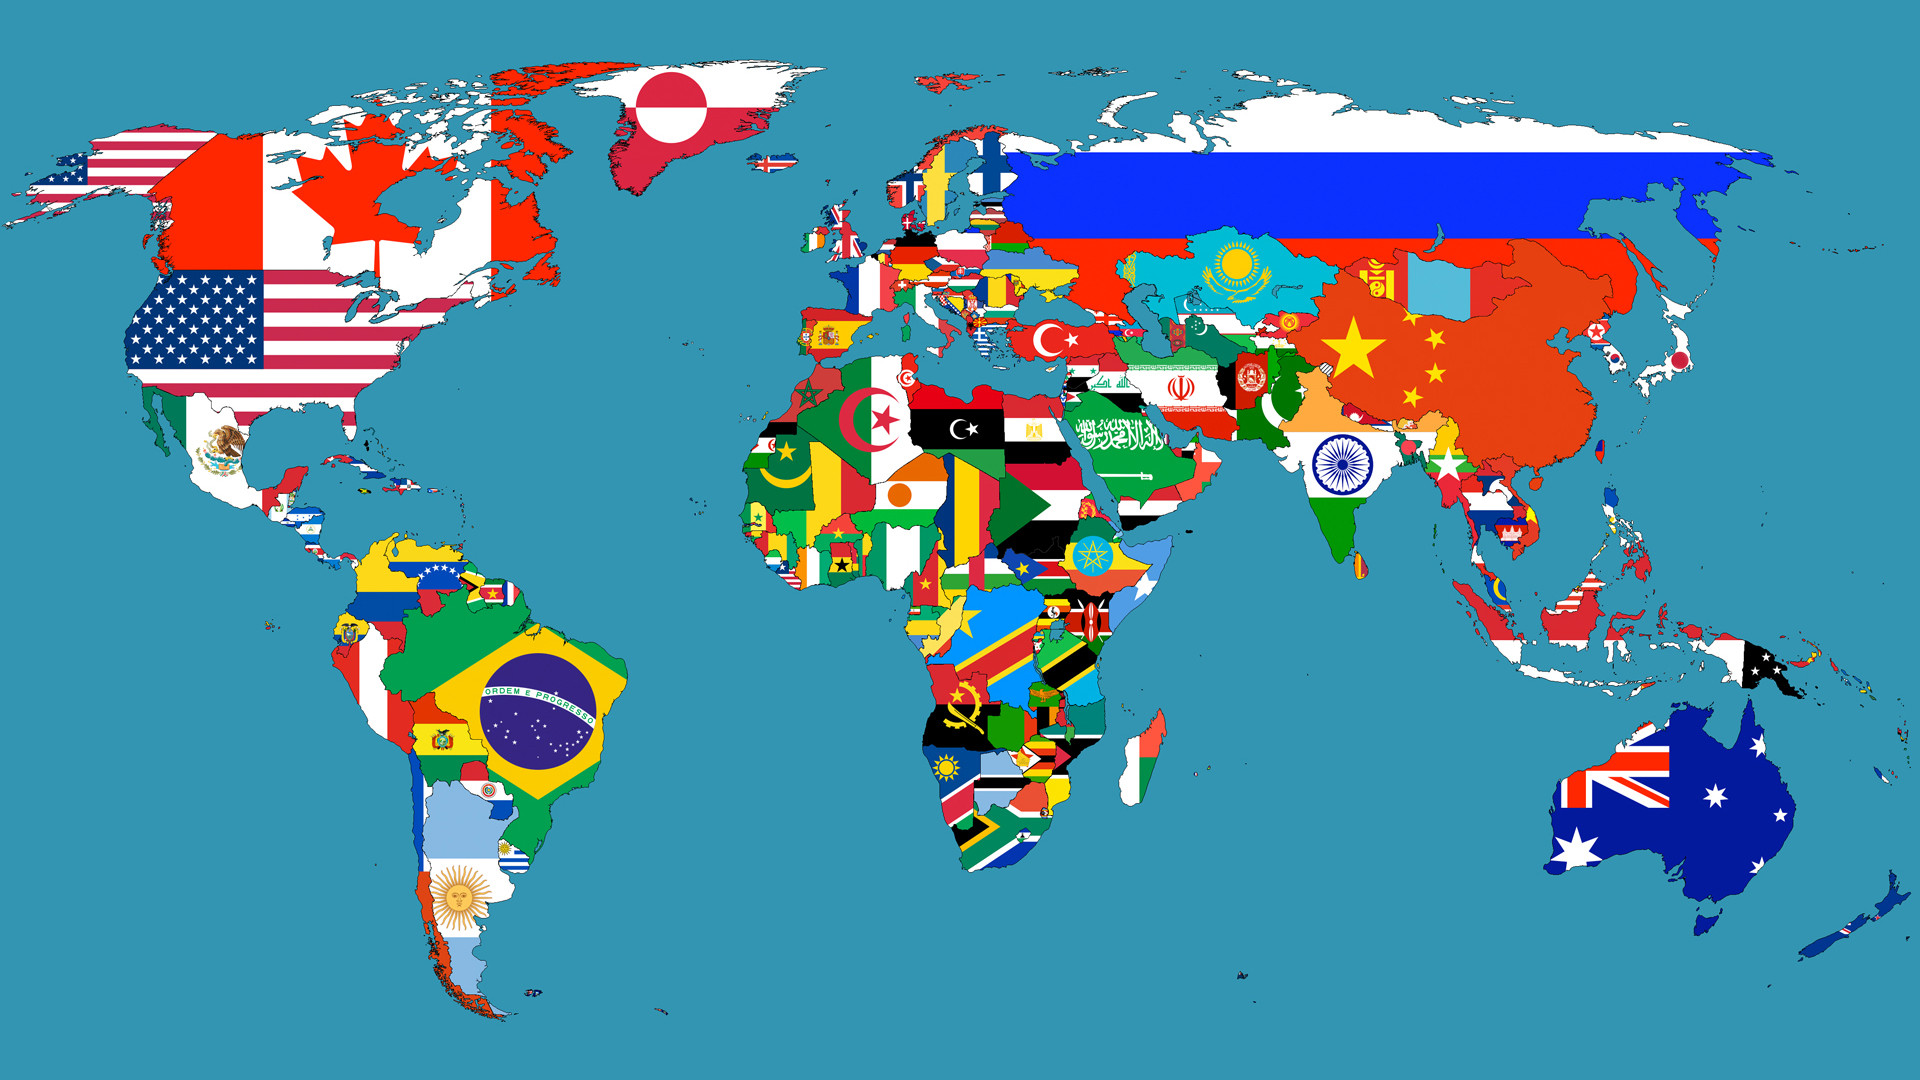 15 really cool world map wallpapers knowtex cool world map download cool world map wallpaper gallery cool world map wallpaper gumiabroncs Image collections